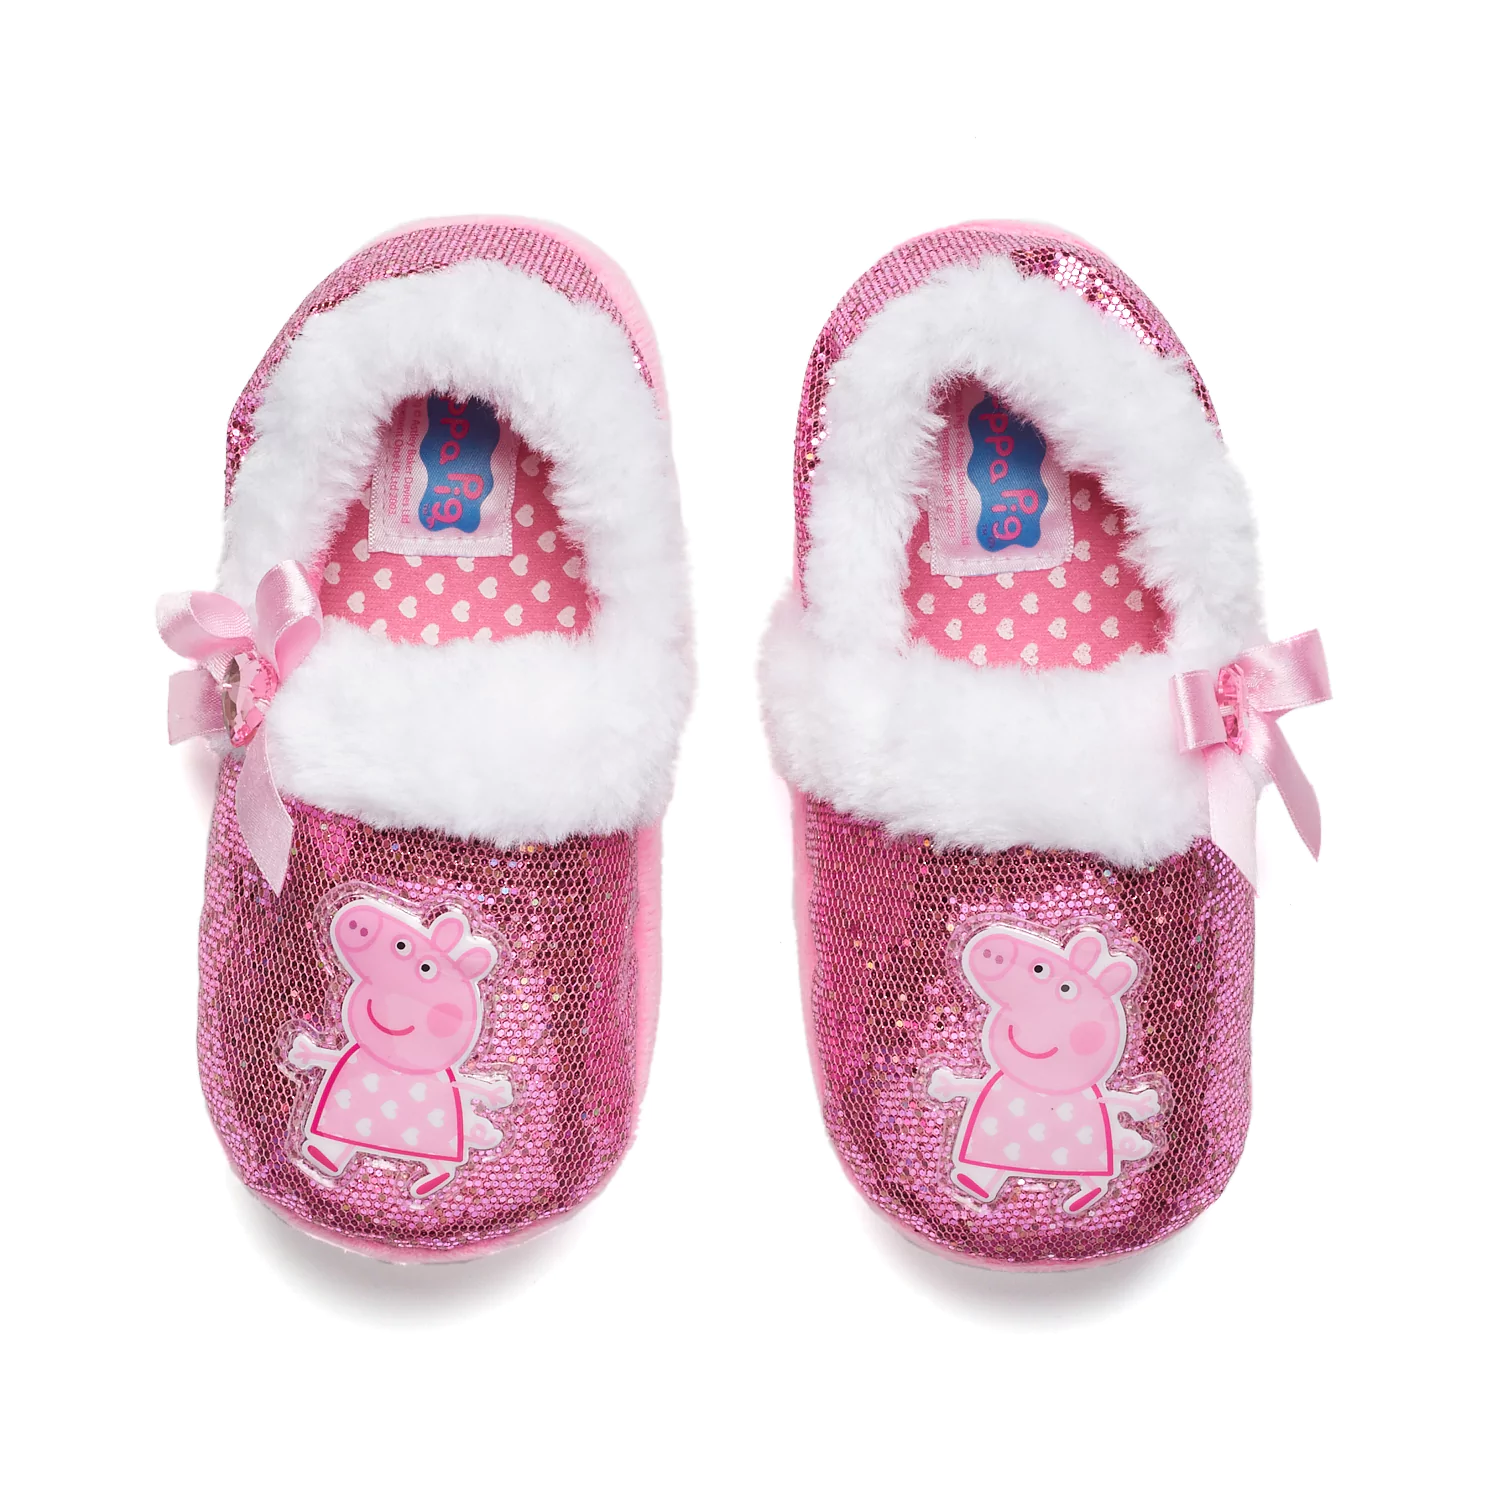 NEW NWT Peppa Pig Slippers Baby Toddler Size 5/6 7/8 9/10 11/12 S M L XL